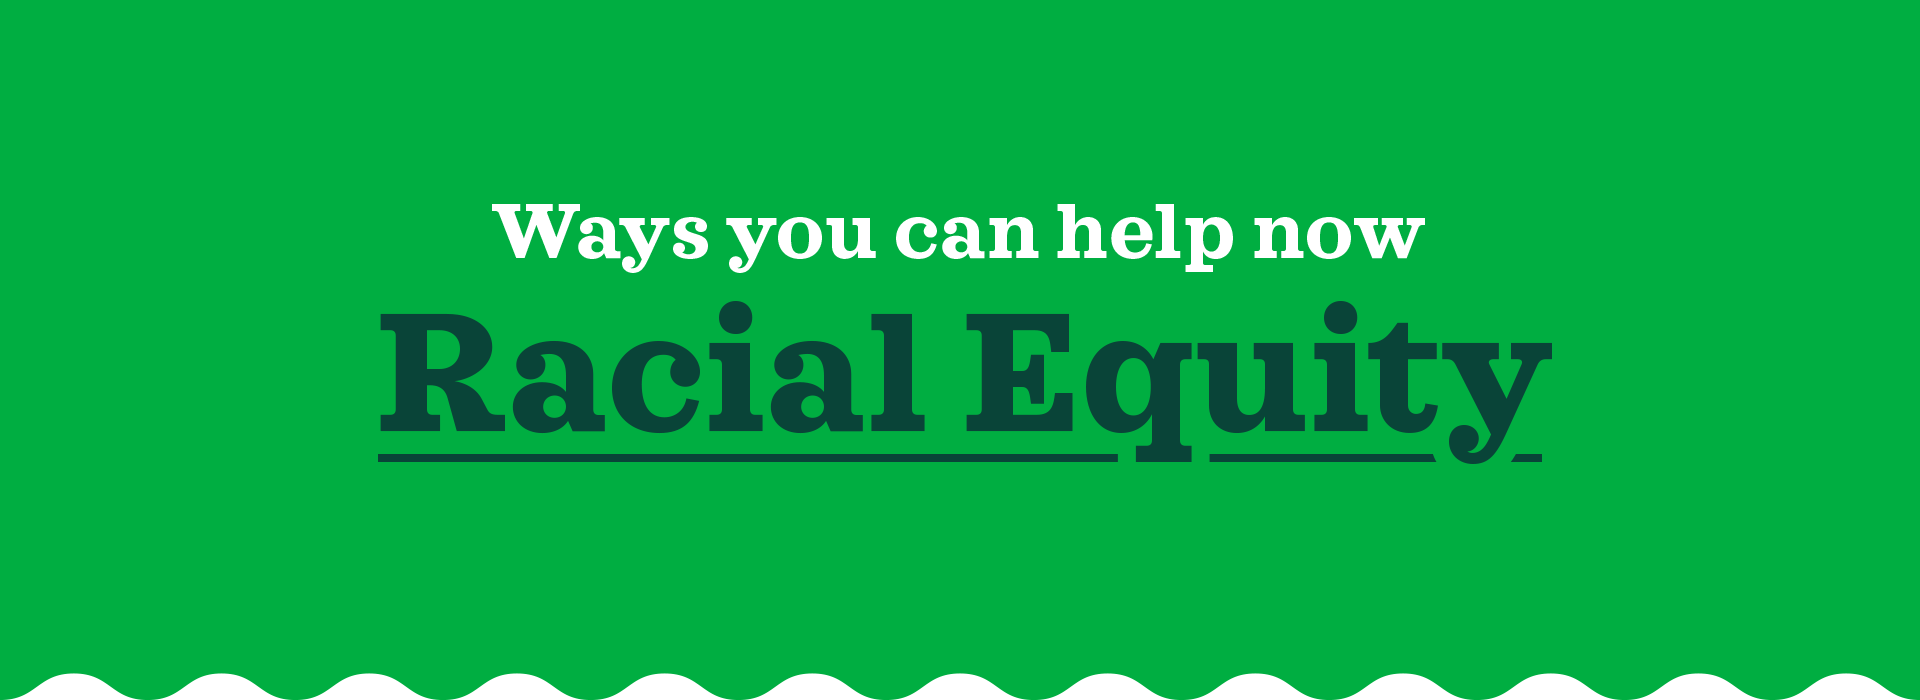 Ways you can help now - Racial Equity